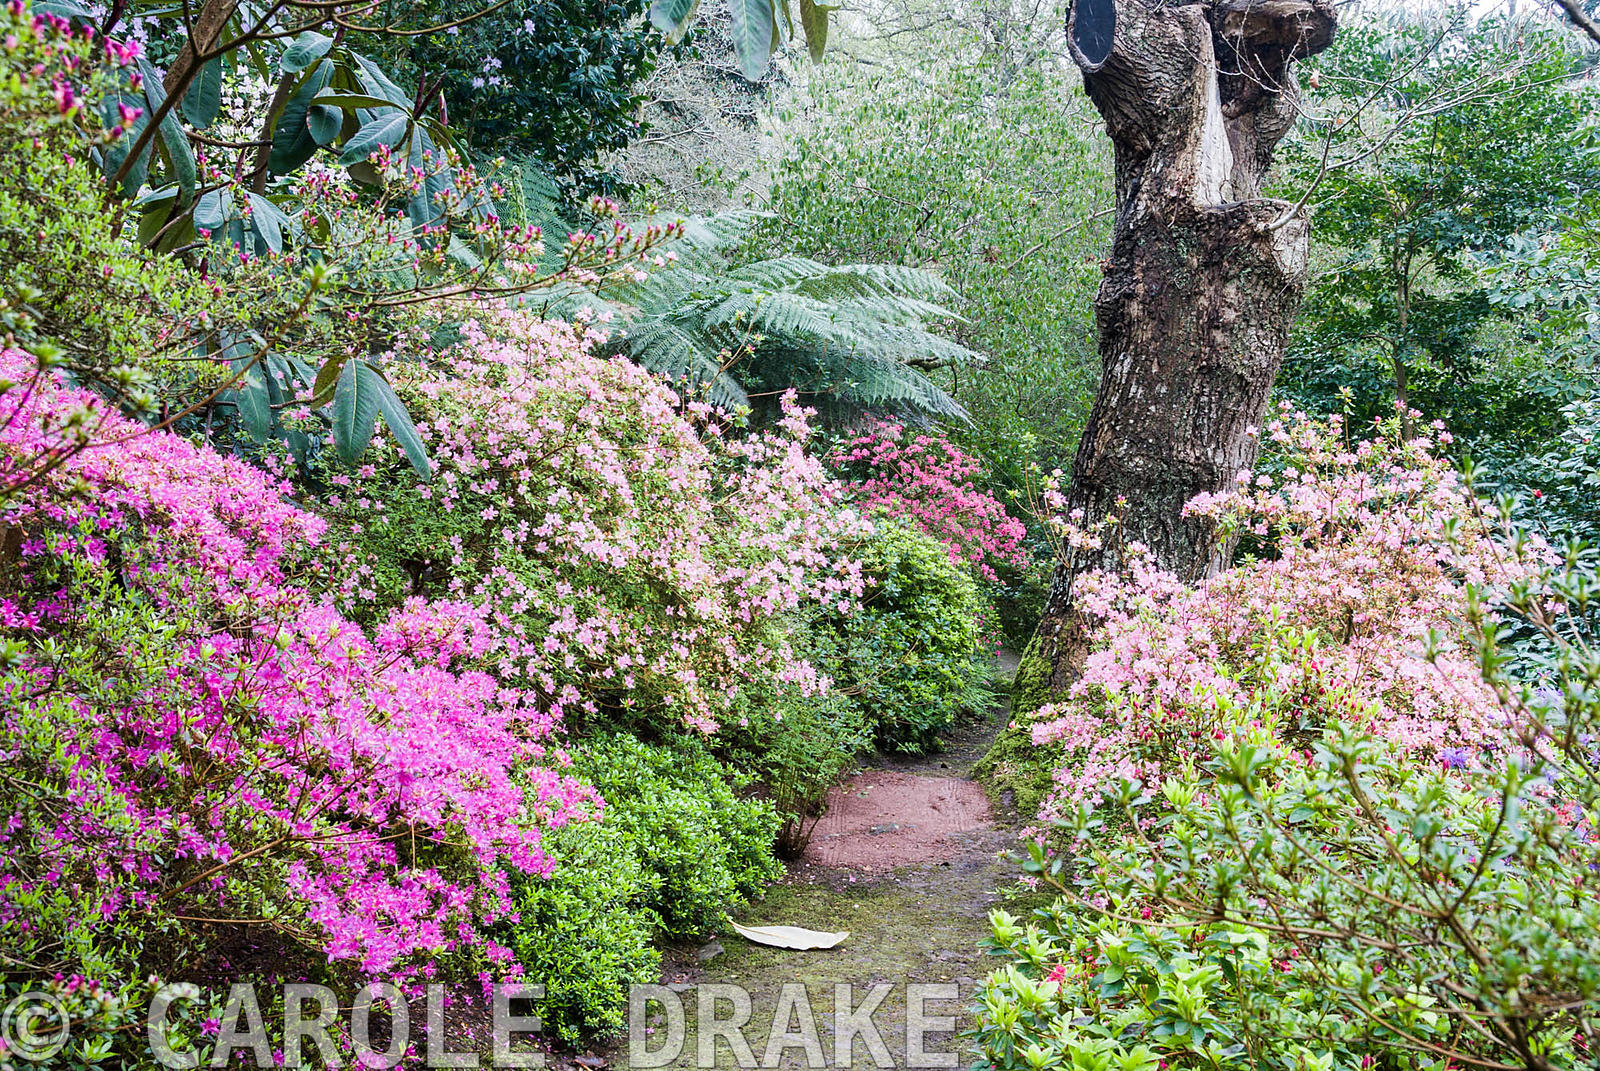 Banks of azaleas, both evergreen and deciduous, flower from all sides in the woodland garden. Greencombe Garden, Porlock, Som...